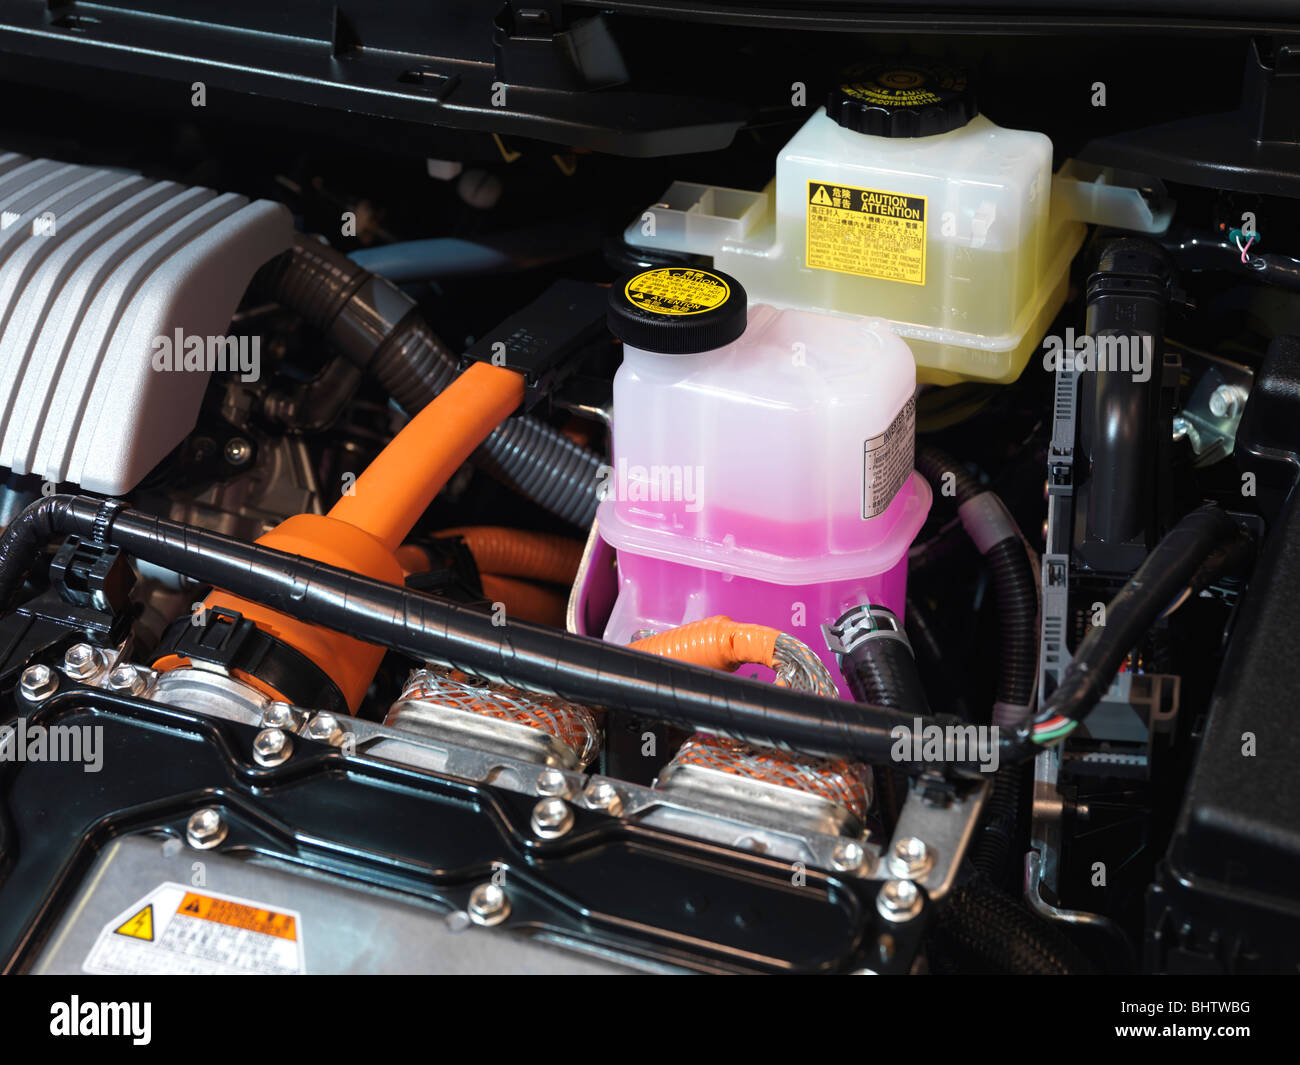 Engine Coolant Stock Photos Images Alamy Color 2010 Toyota Prius Hybrid Brake Fluid And Inverter Image